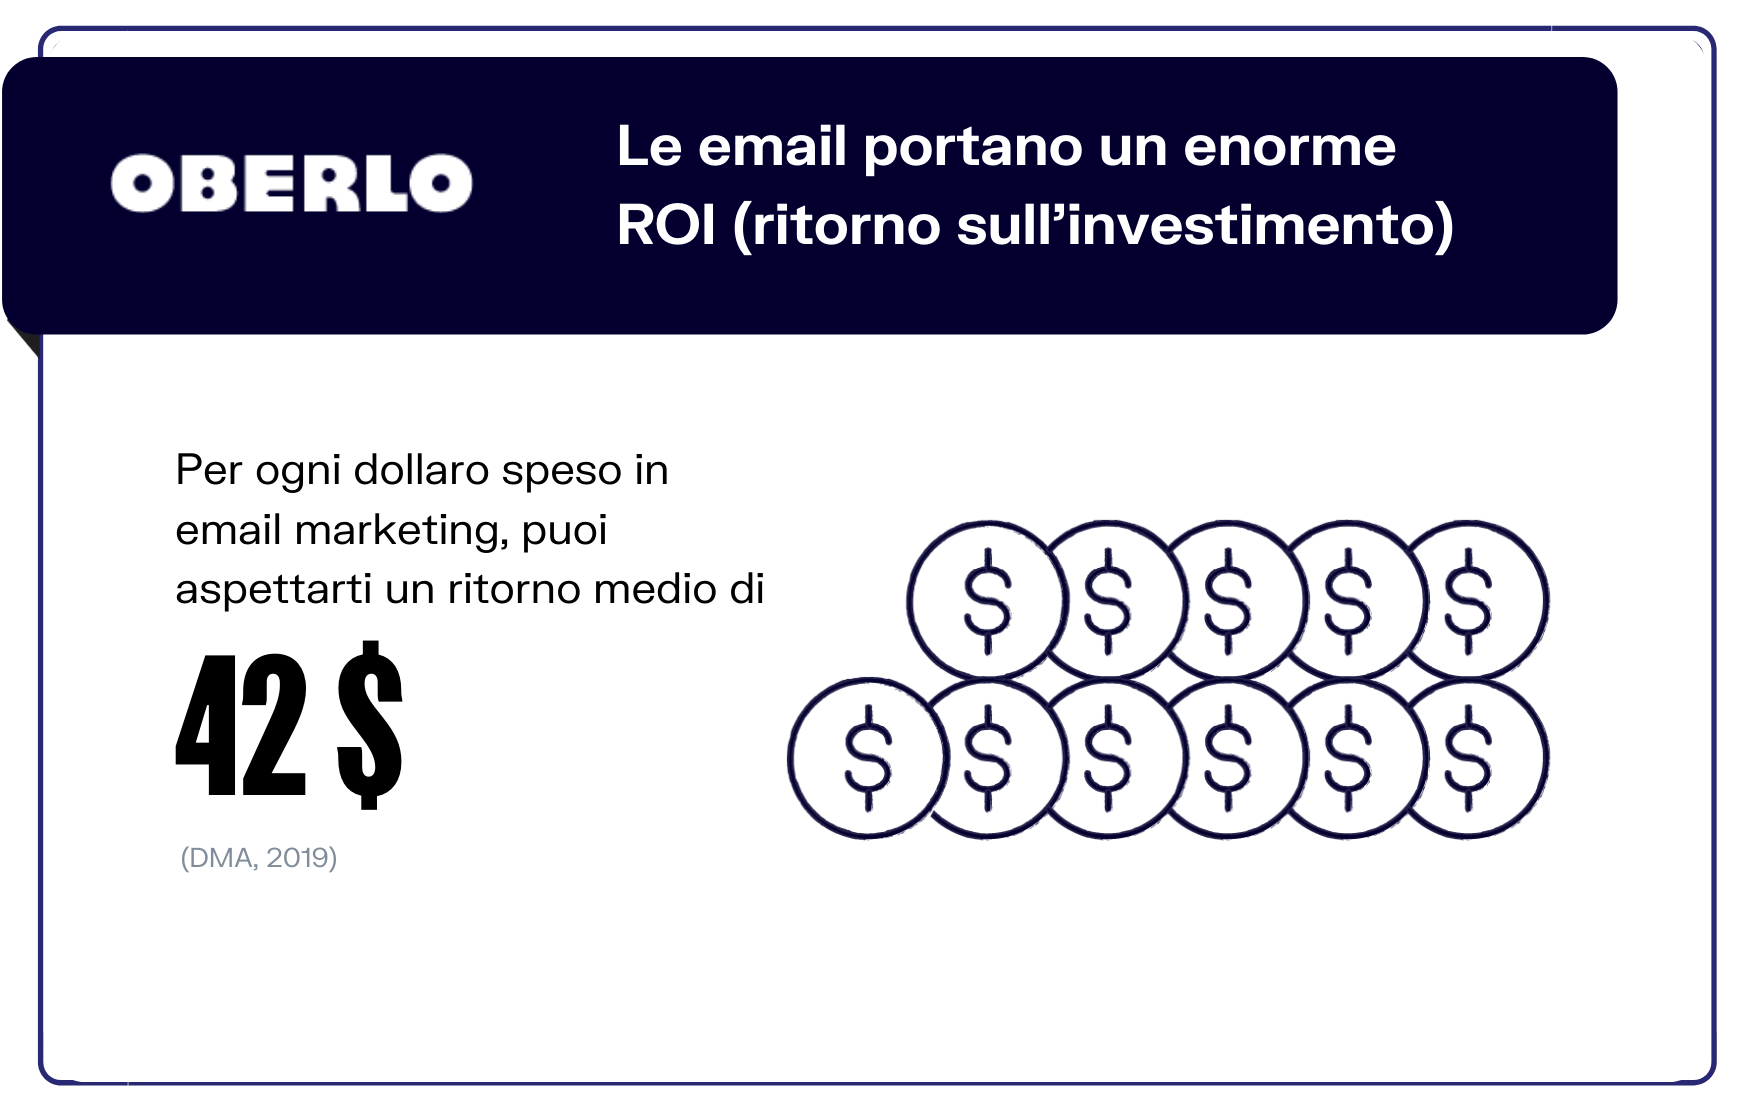 statistiche email marketing roi